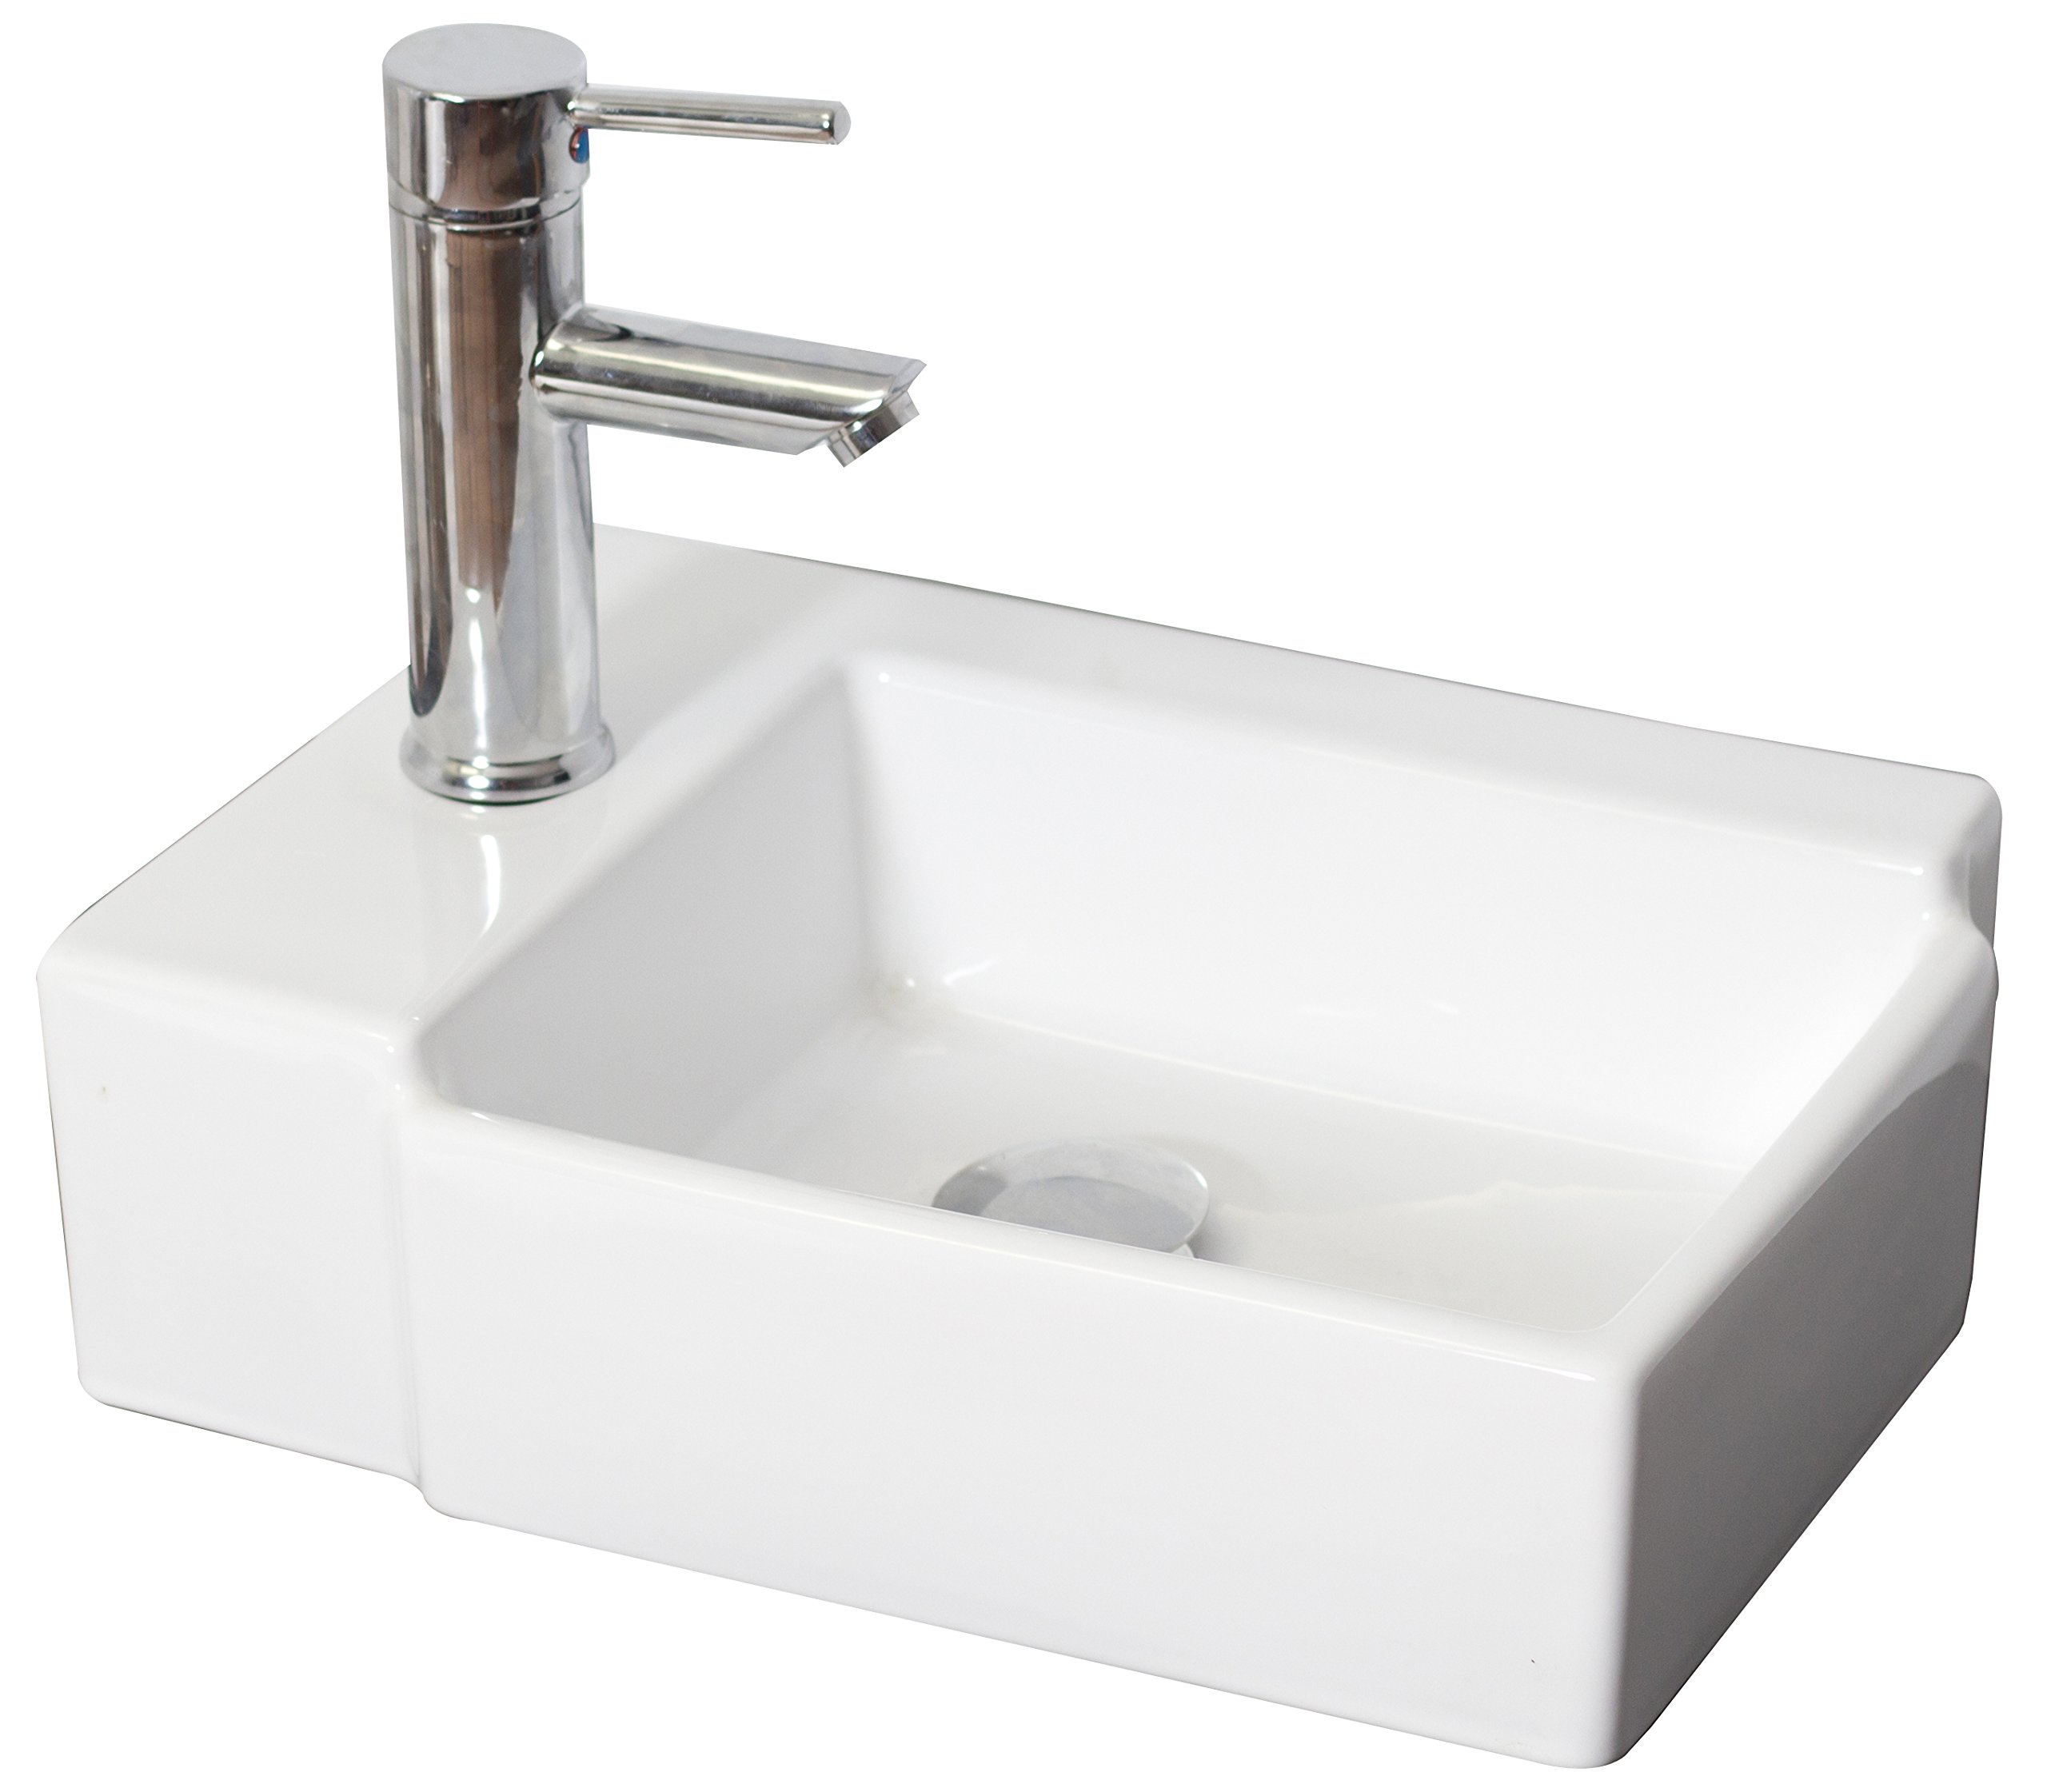 American Imaginations AI-4-1301 Above Counter Rectangle Vessel for Single Hole Faucet, 16.25-Inch x 12-Inch, White by American Imaginations